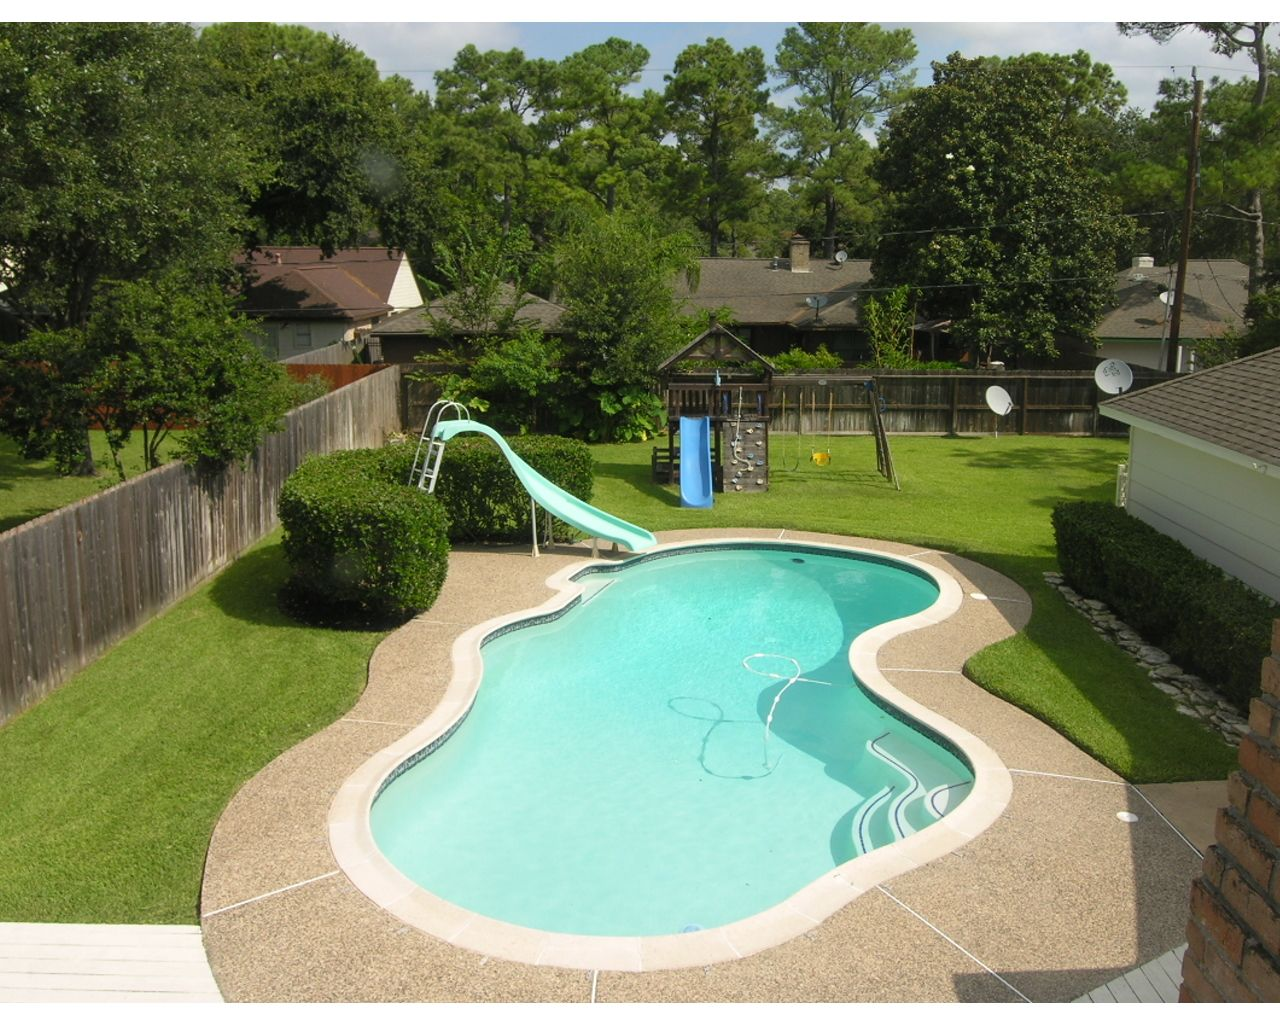 Backyard pools great view of large backyard pool but for Small backyard pools